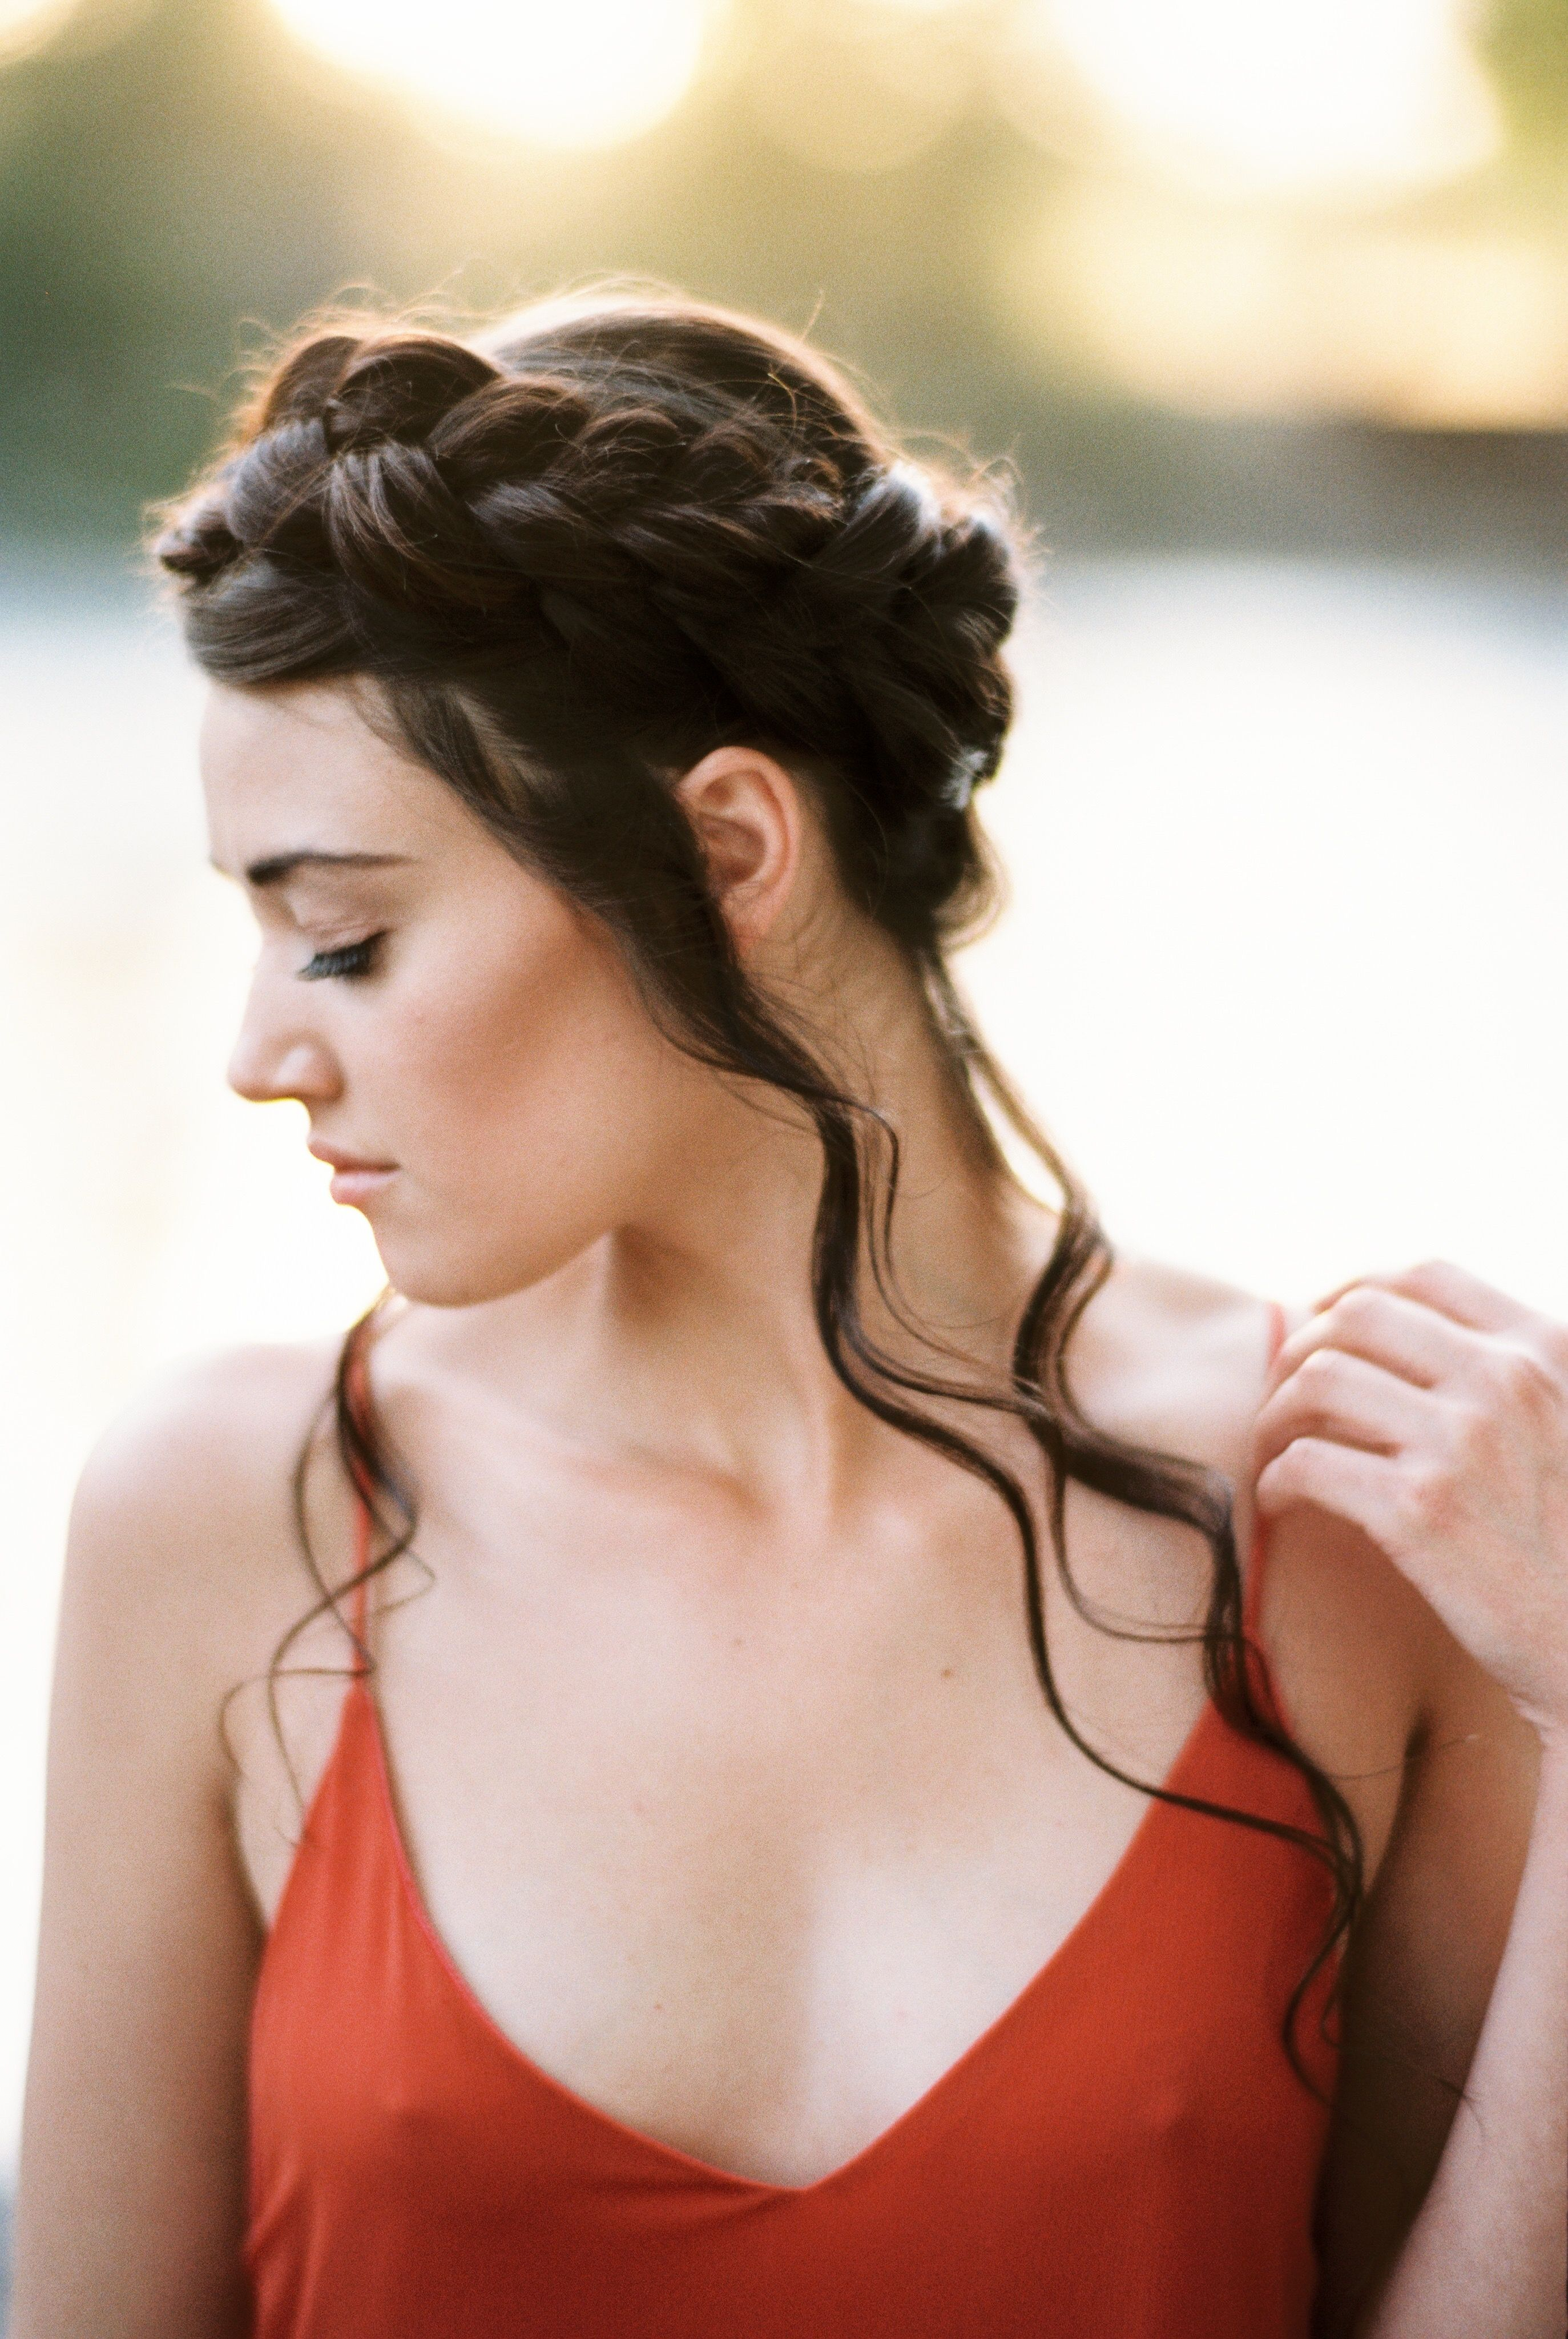 pin by ethereal hair & makeup artistry on hair by me | hair